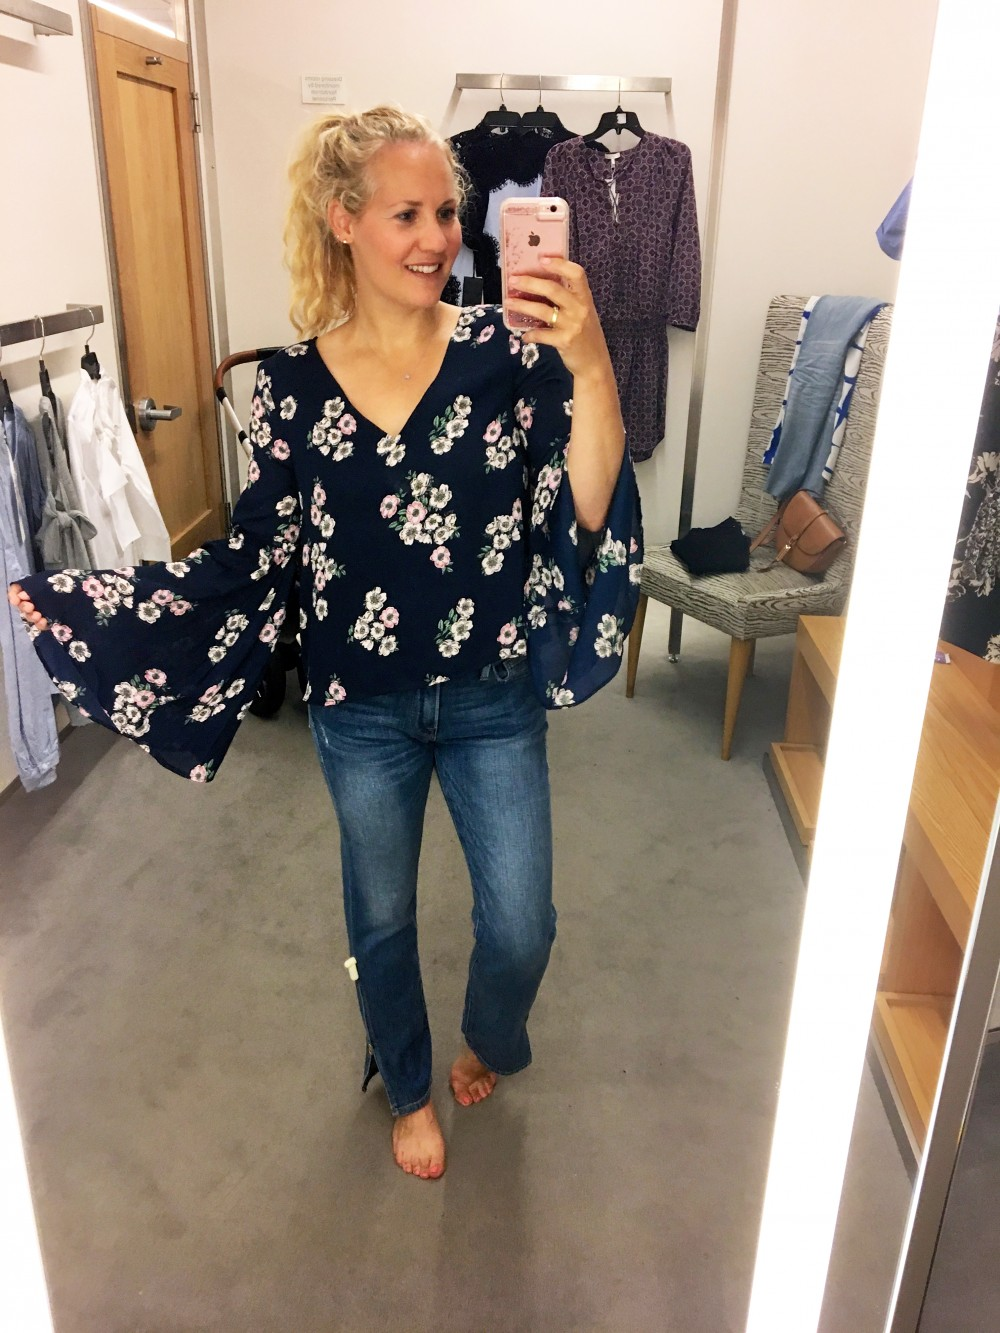 Dressing Room Diaries- Nordstrom Anniversary Sale-Fall Tops-Blogger Picks for the NSale-Nordstrom Sale-Fall Style-Fall Fashion 2017-Have Need Want 2